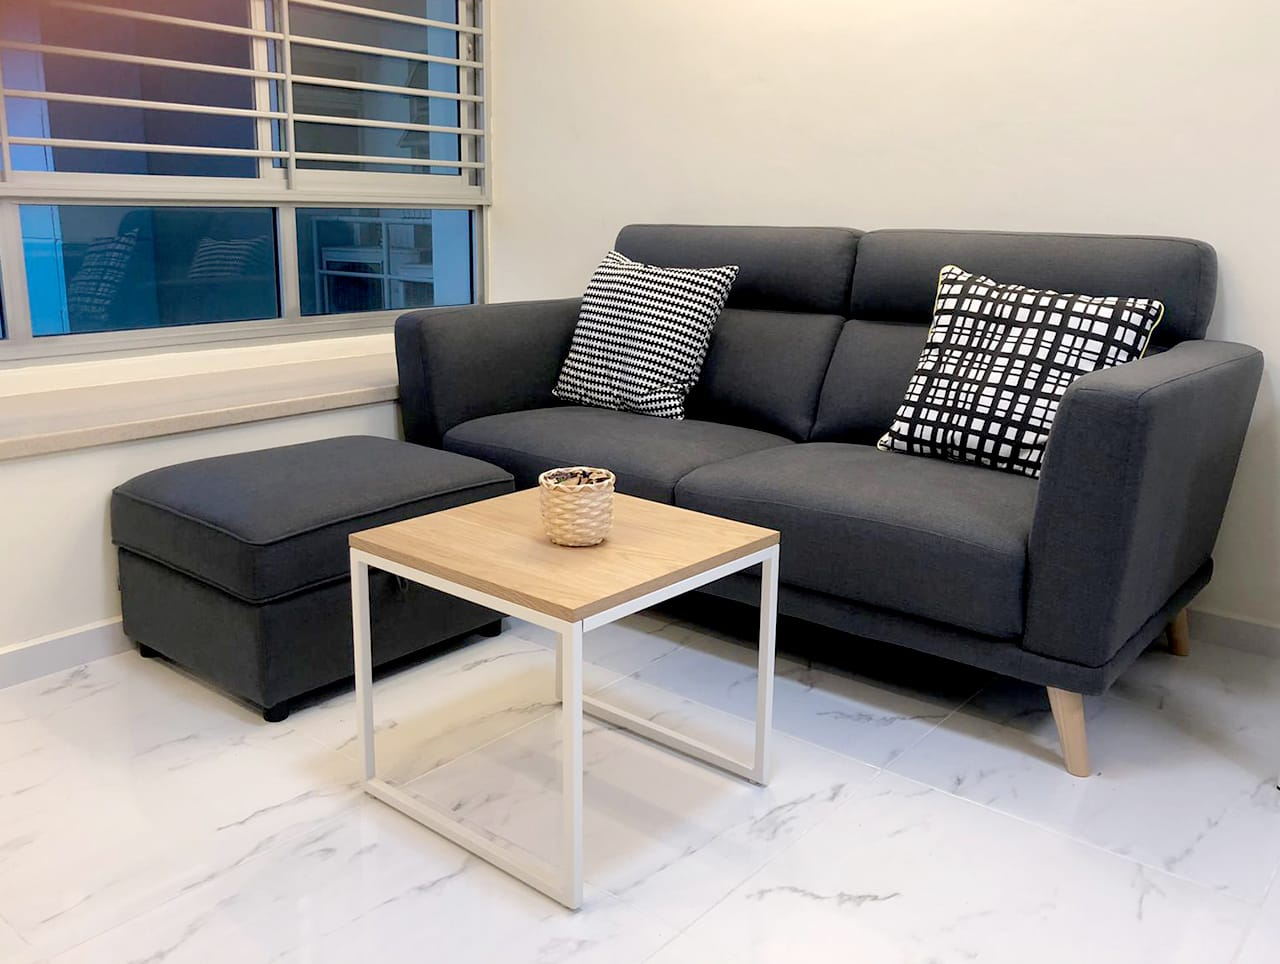 Bendemeer - HDB | Product Seen: [Neuron 2.5 Seater Sofa, Treasure Ottoman (Storage) & Dina 2-in-1 Coffee Table (Nestable)]<br />